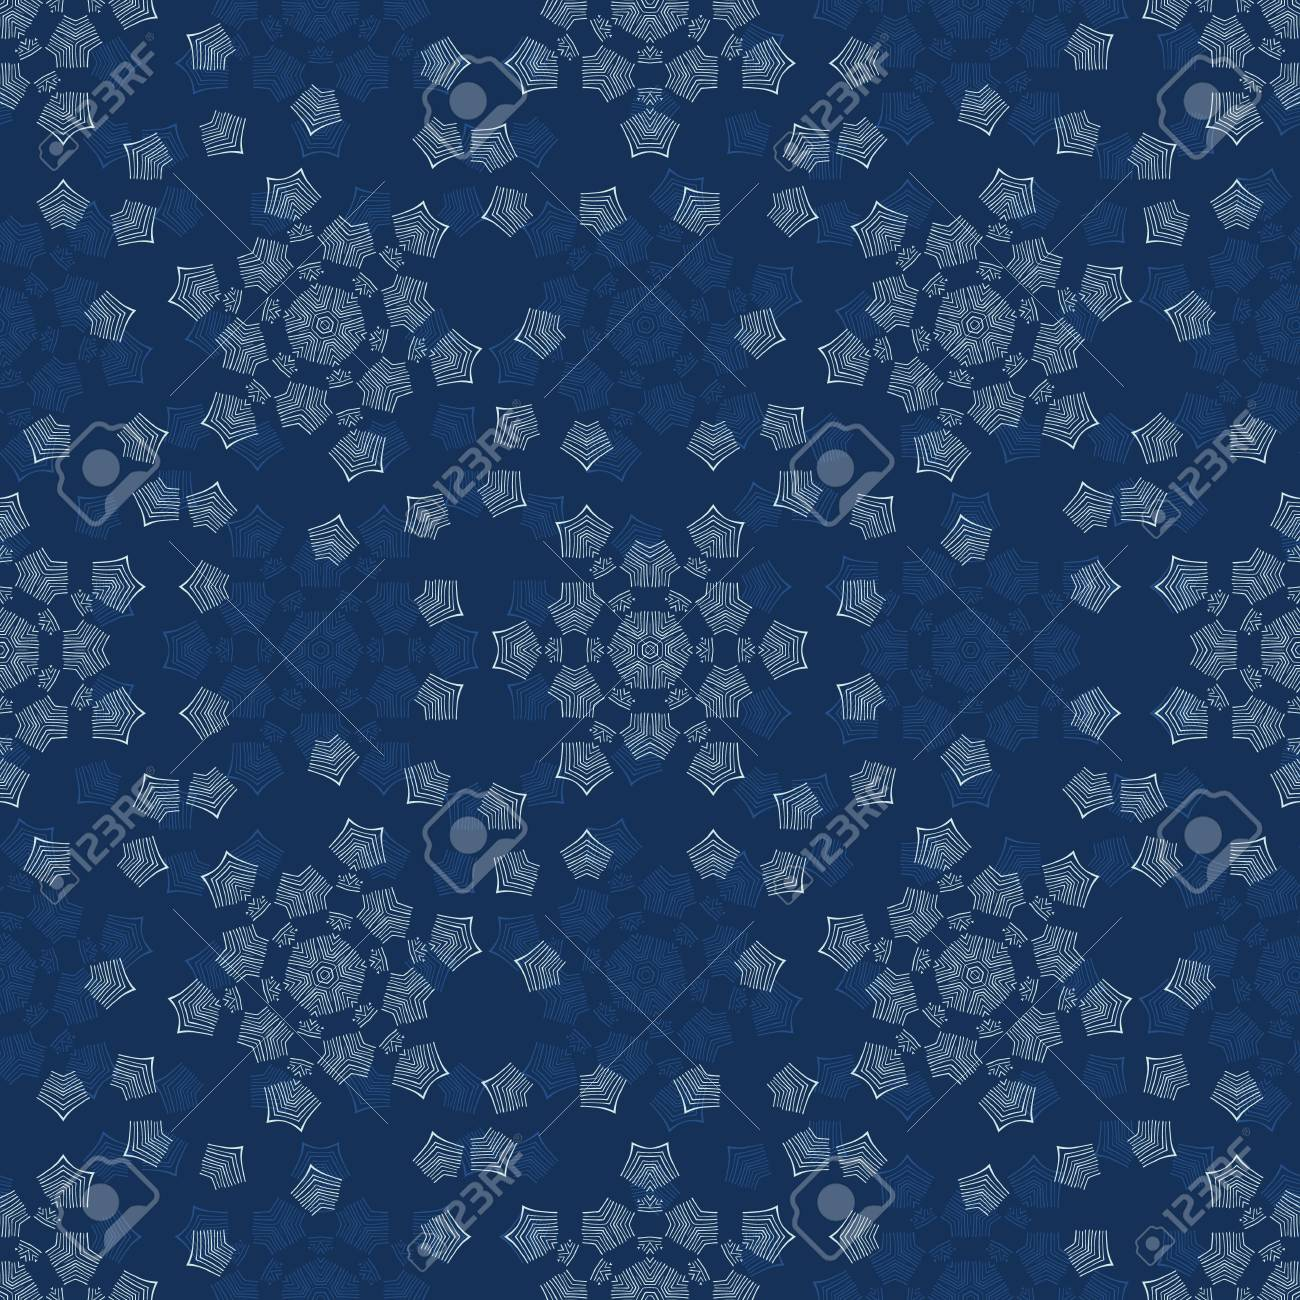 Winter Snowflake Texture Seamless Vector Pattern Drawn Starry Royalty Free Cliparts Vectors And Stock Illustration Image 110646363